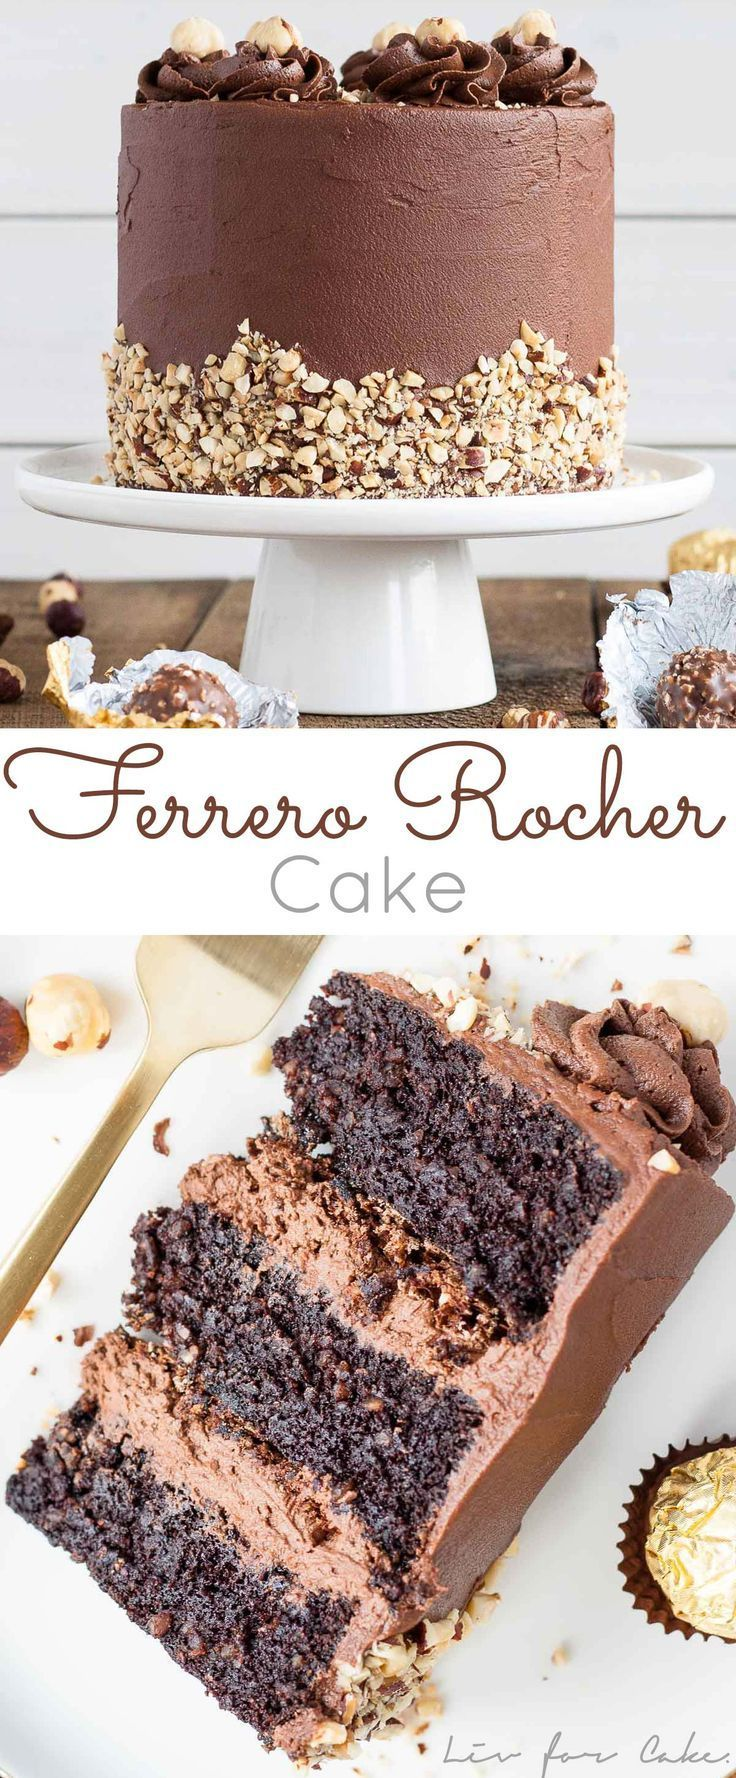 This Ferrero Rocher Cake is your favourite chocolate hazelnut treat in cake form!